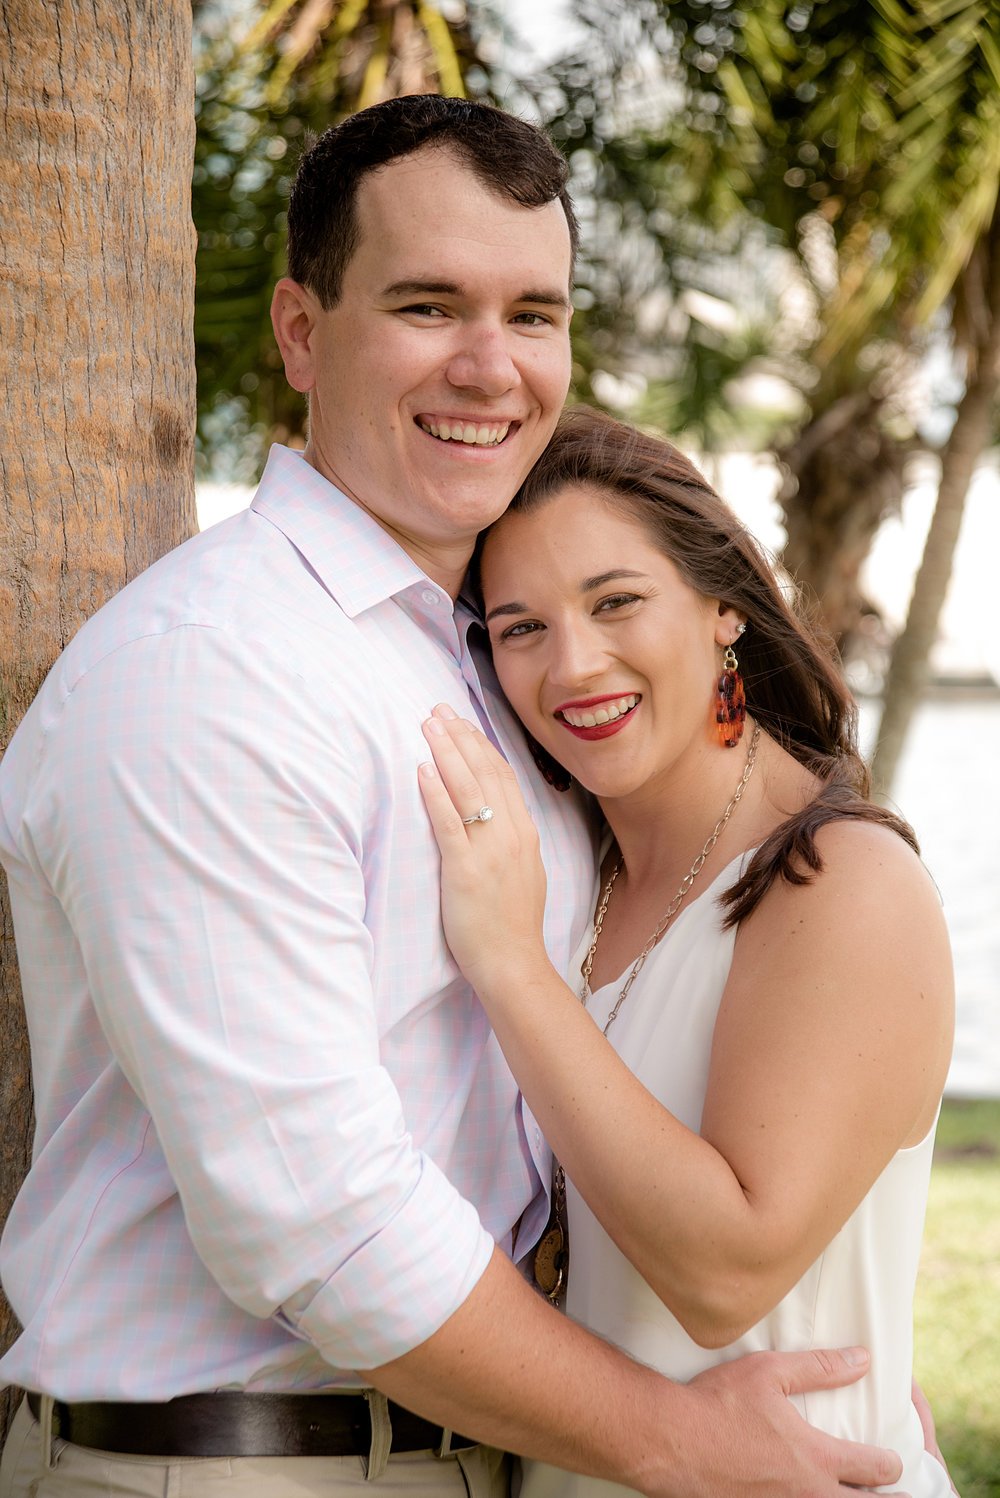 Katie & David - December 1, 2018 - Curtis Nixon Park, University of Tampa, Tampa, FL